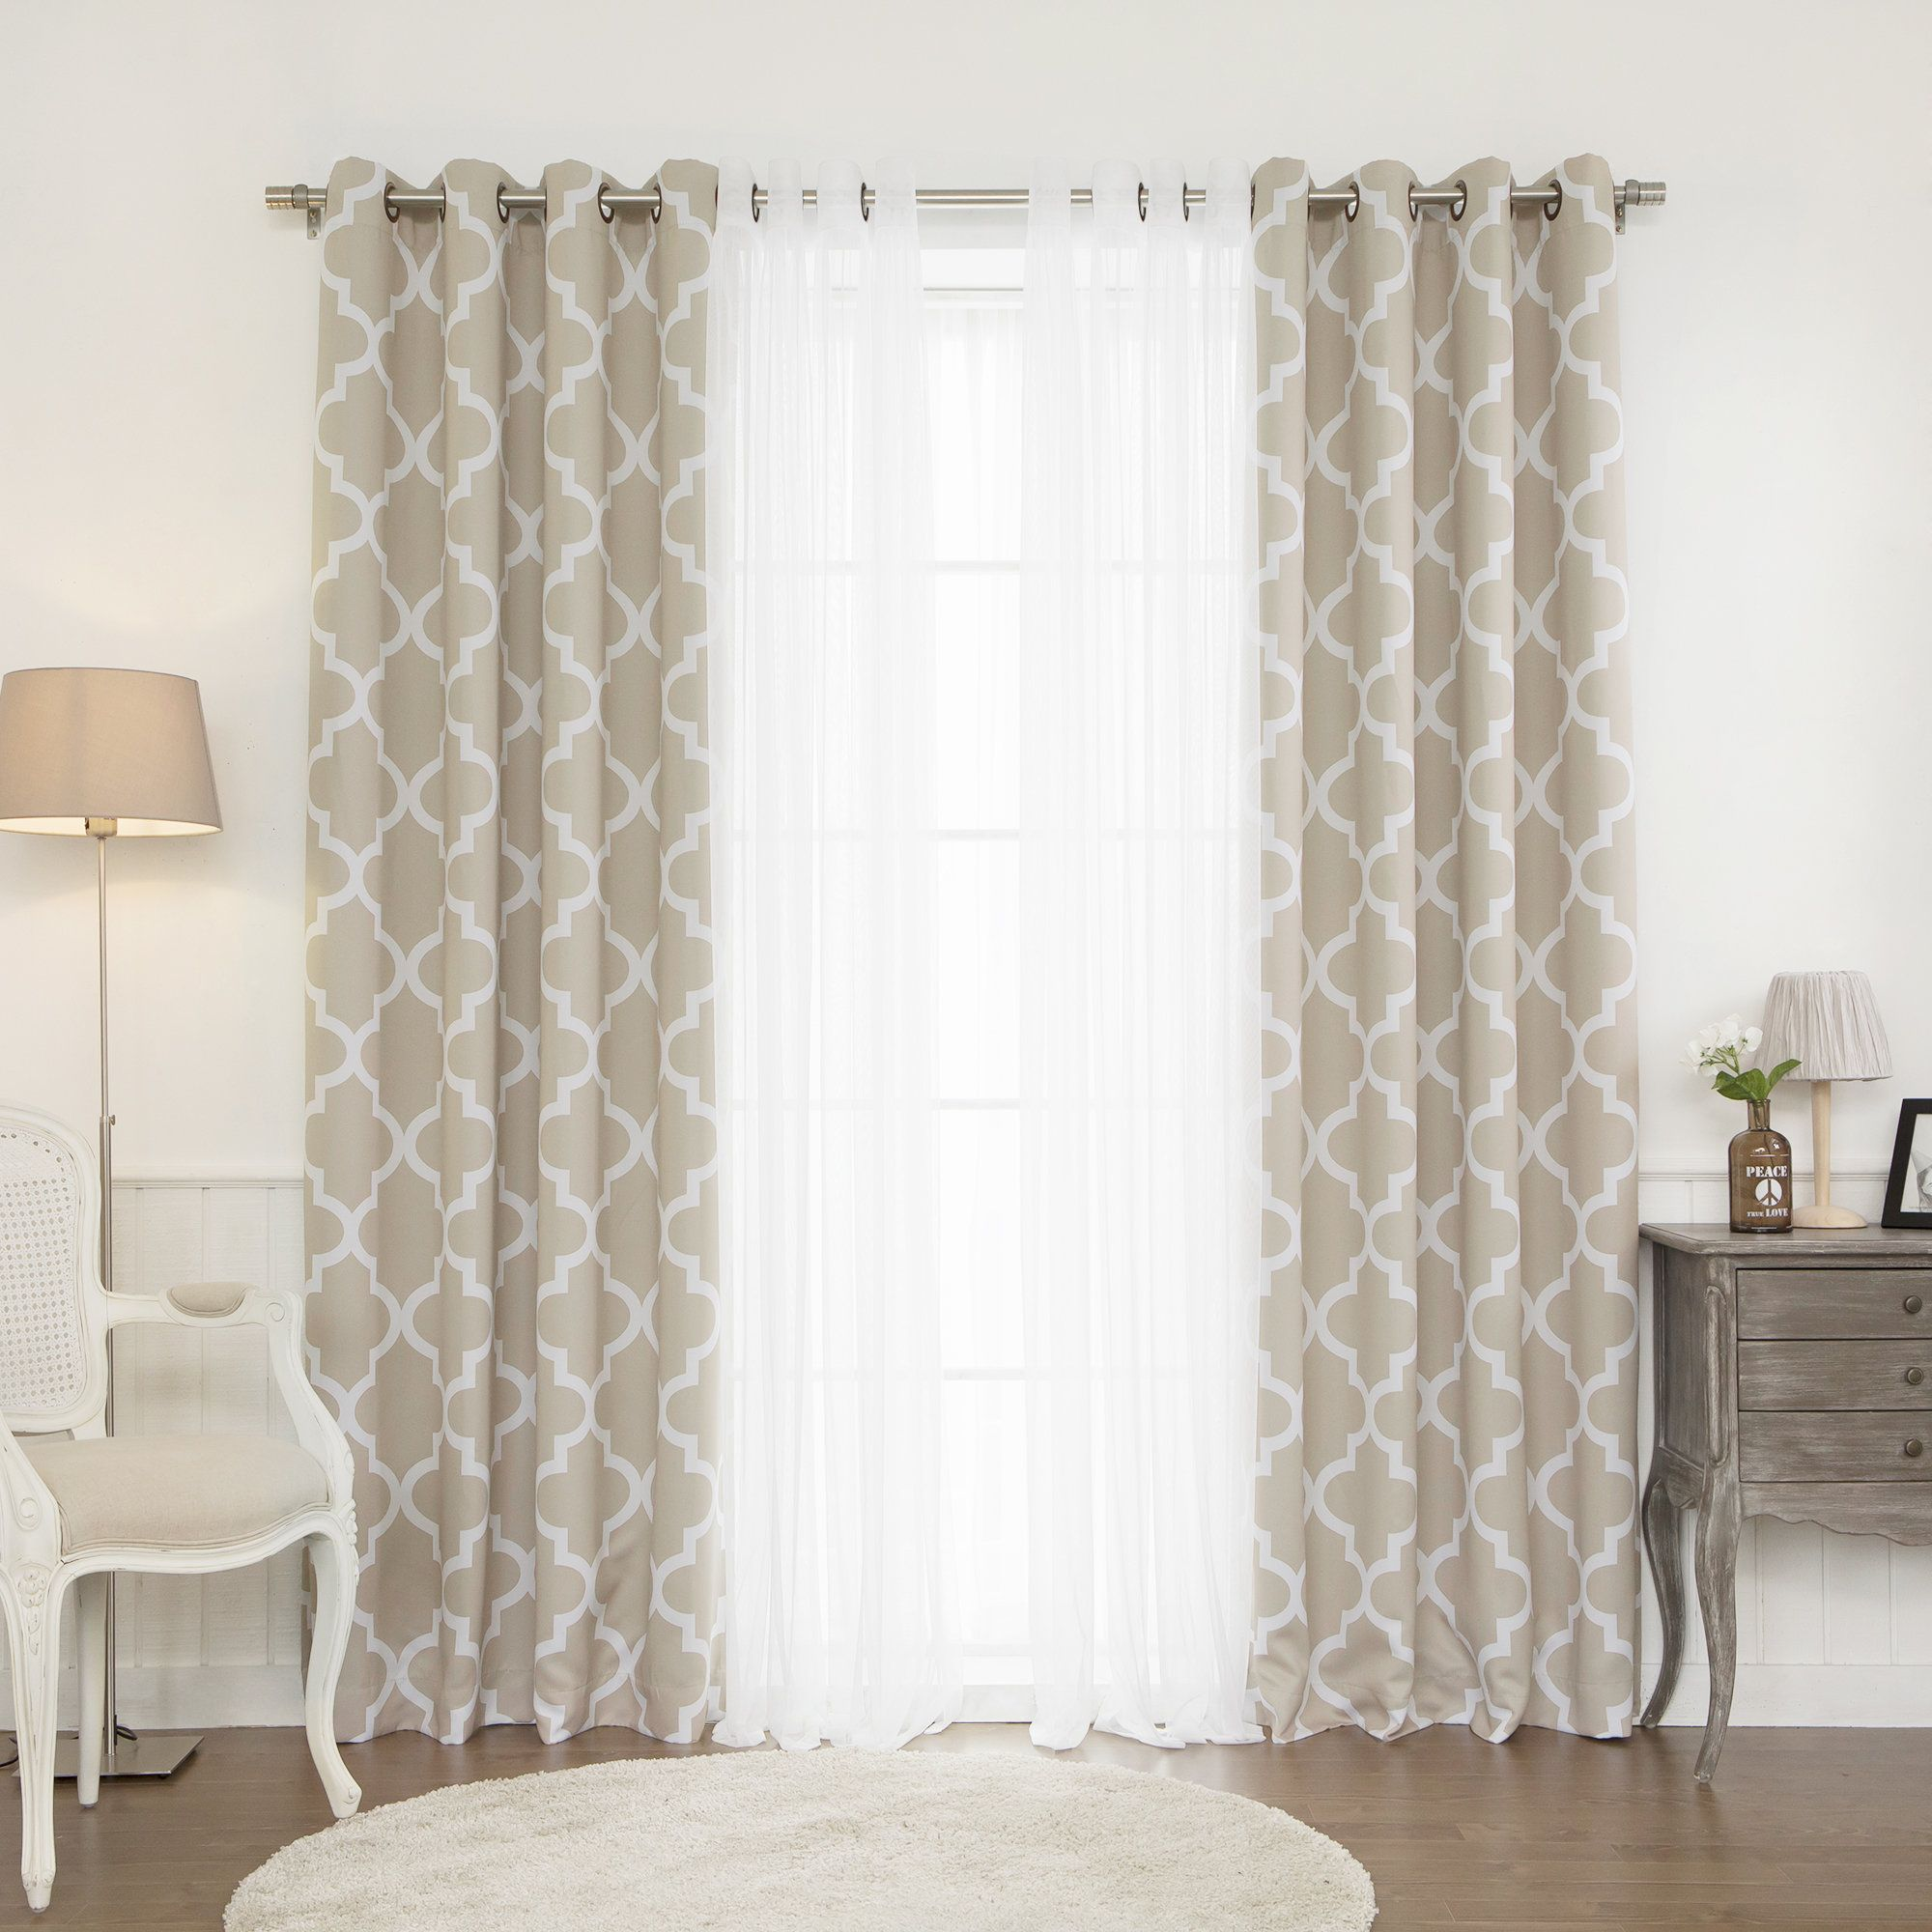 Linden Trellis Grommet Curtain Panel Living Room Decor Curtains